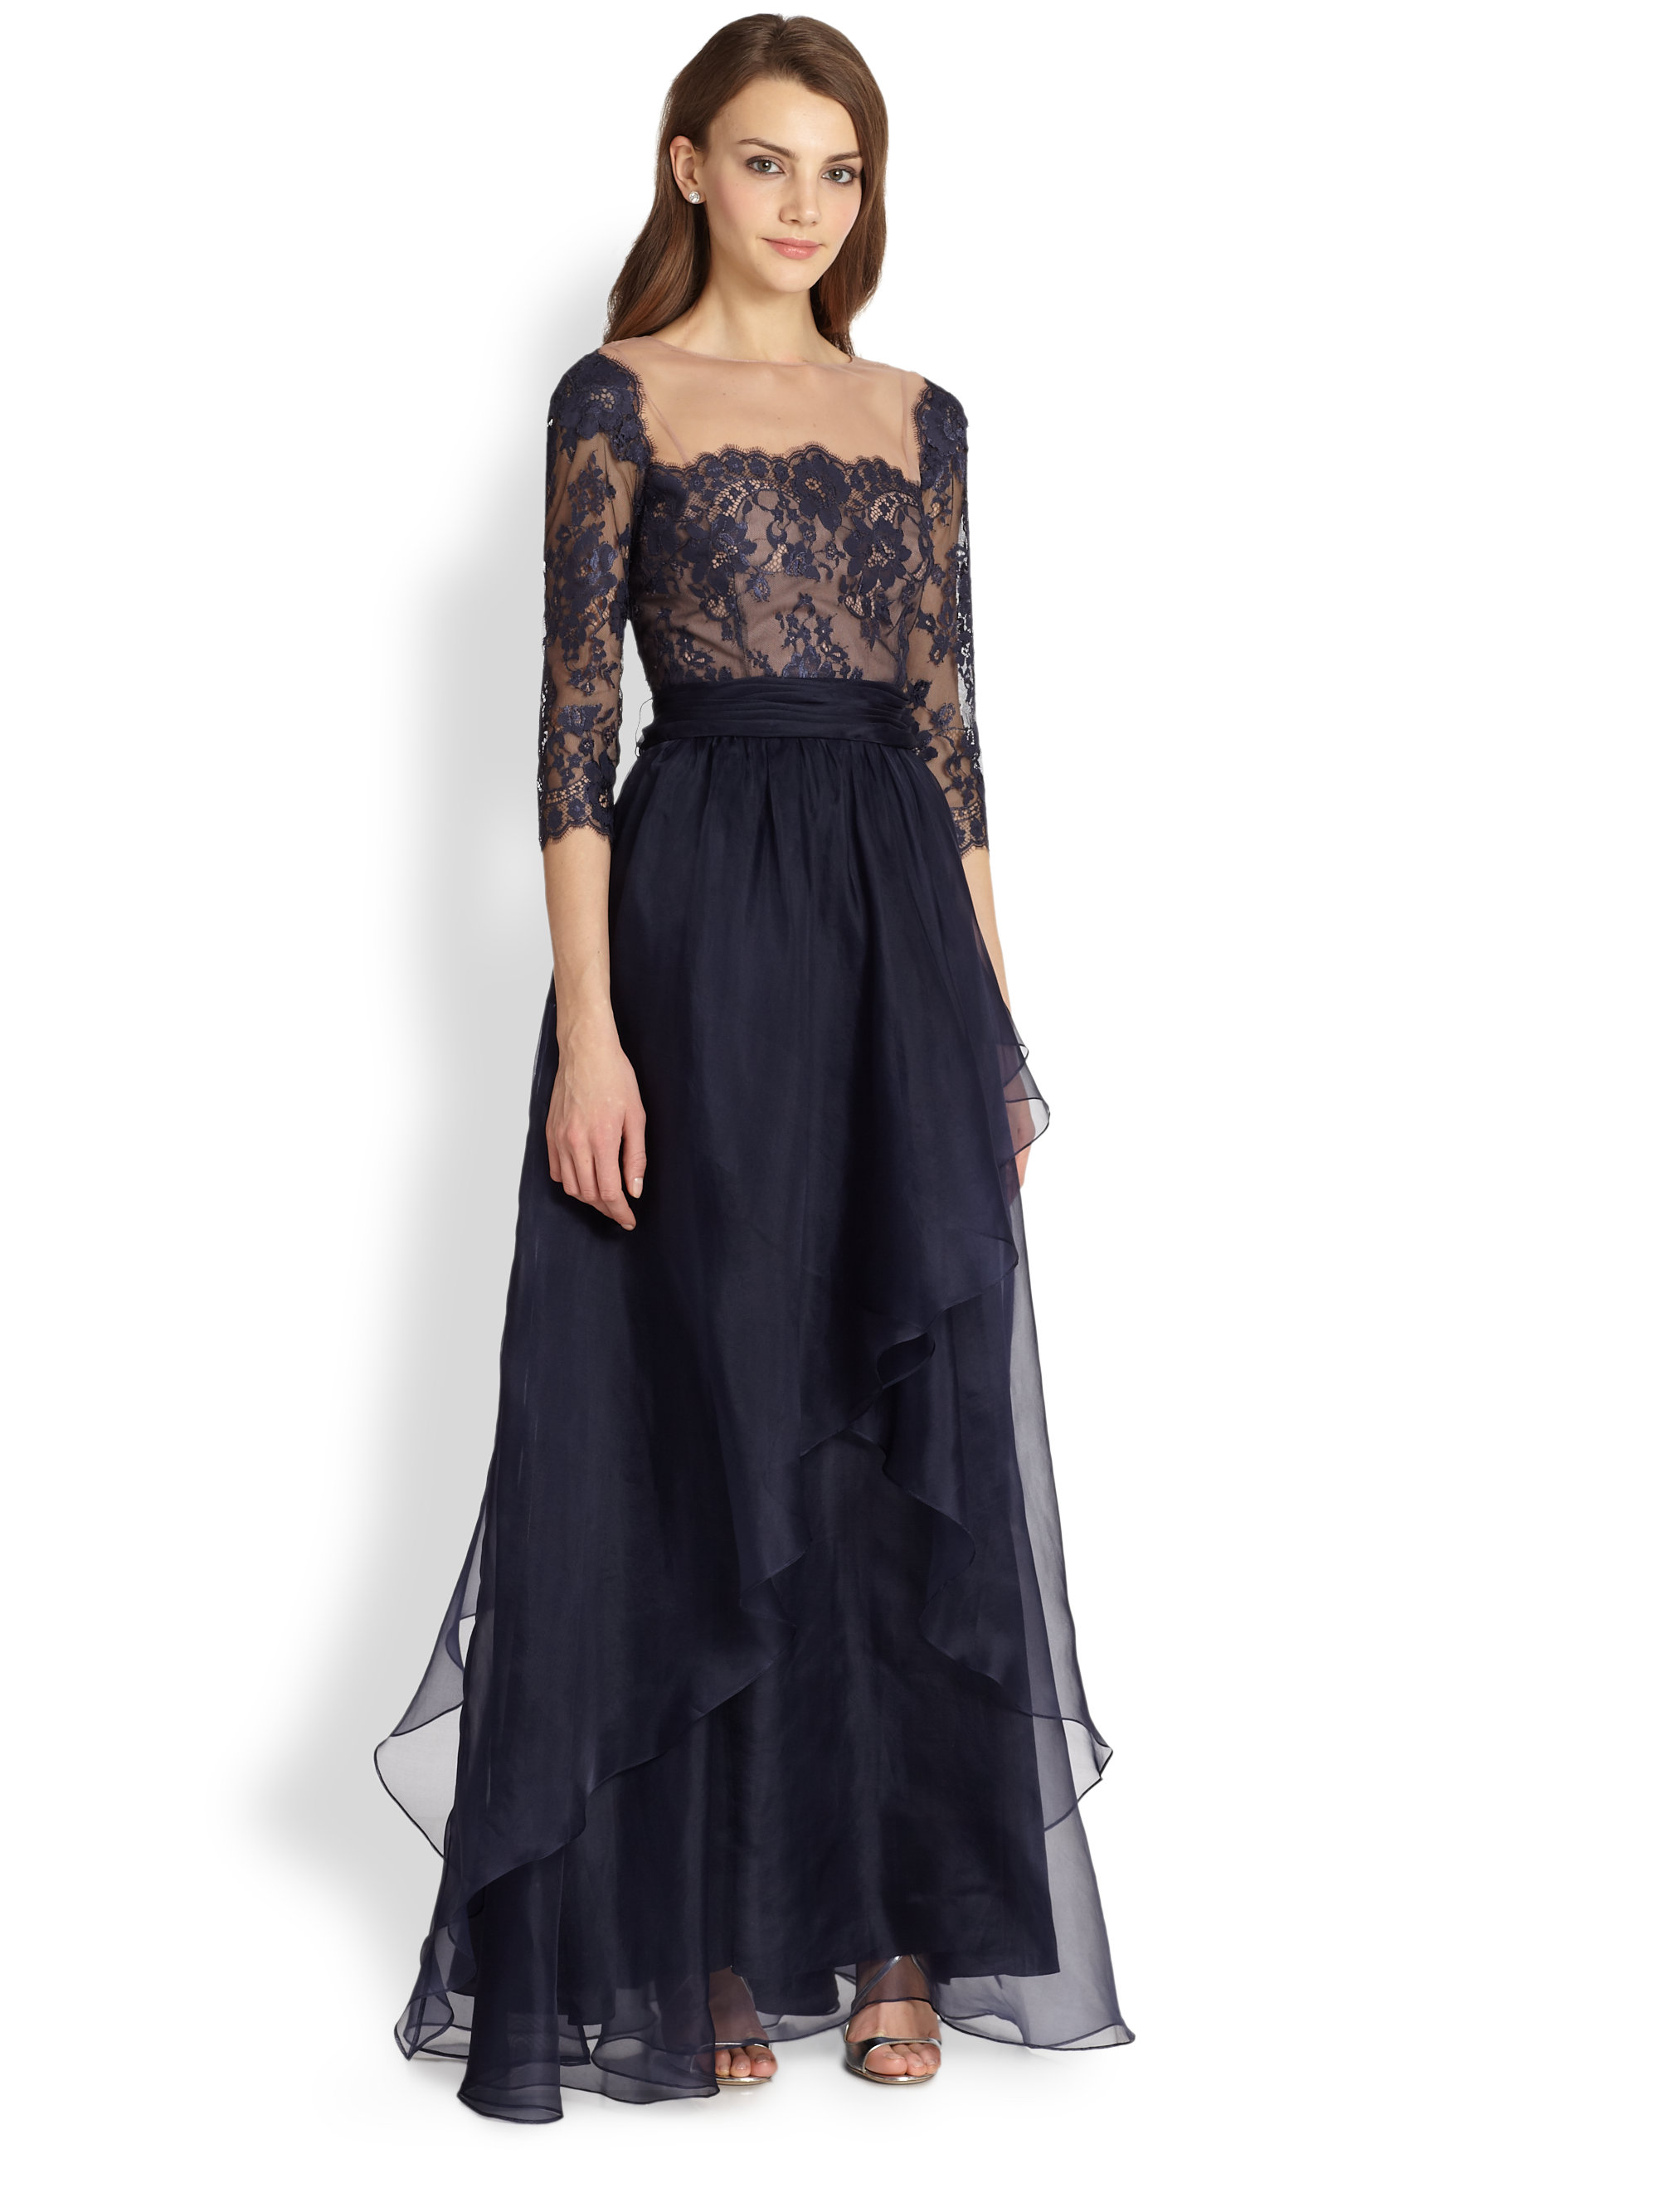 Teri jon lace and chiffon dress